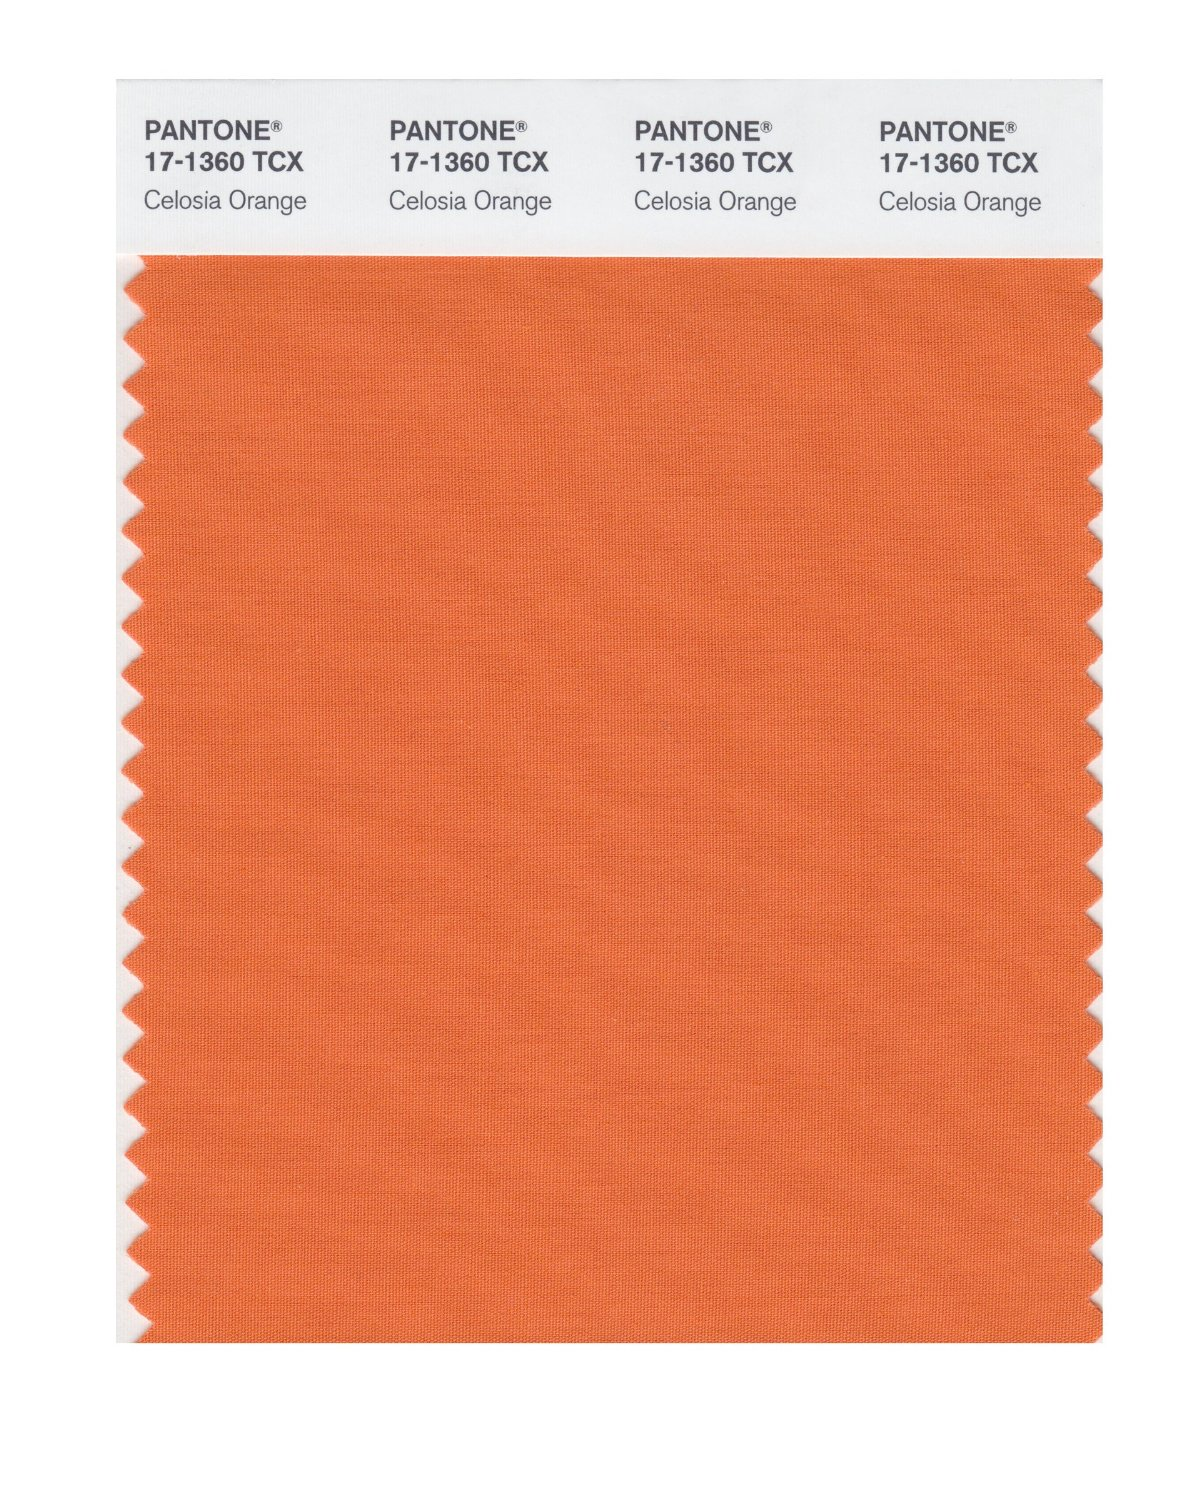 Pantone Smart Swatch 17-1360 Celosia Orange